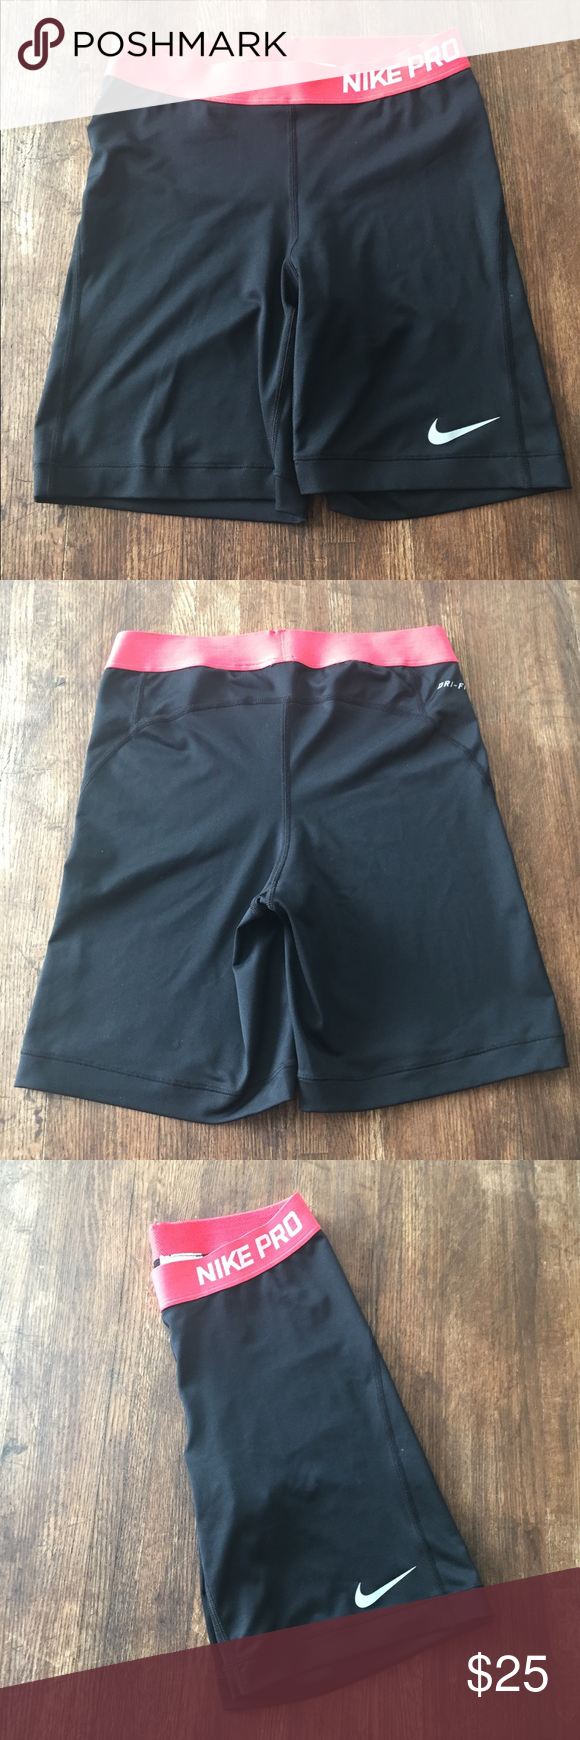 """Nike Pro 5"""" Compression Short Sz M This is a listing for Nike Pro Compression Shorts 5"""" Sz M Gently Used Nike Shorts"""